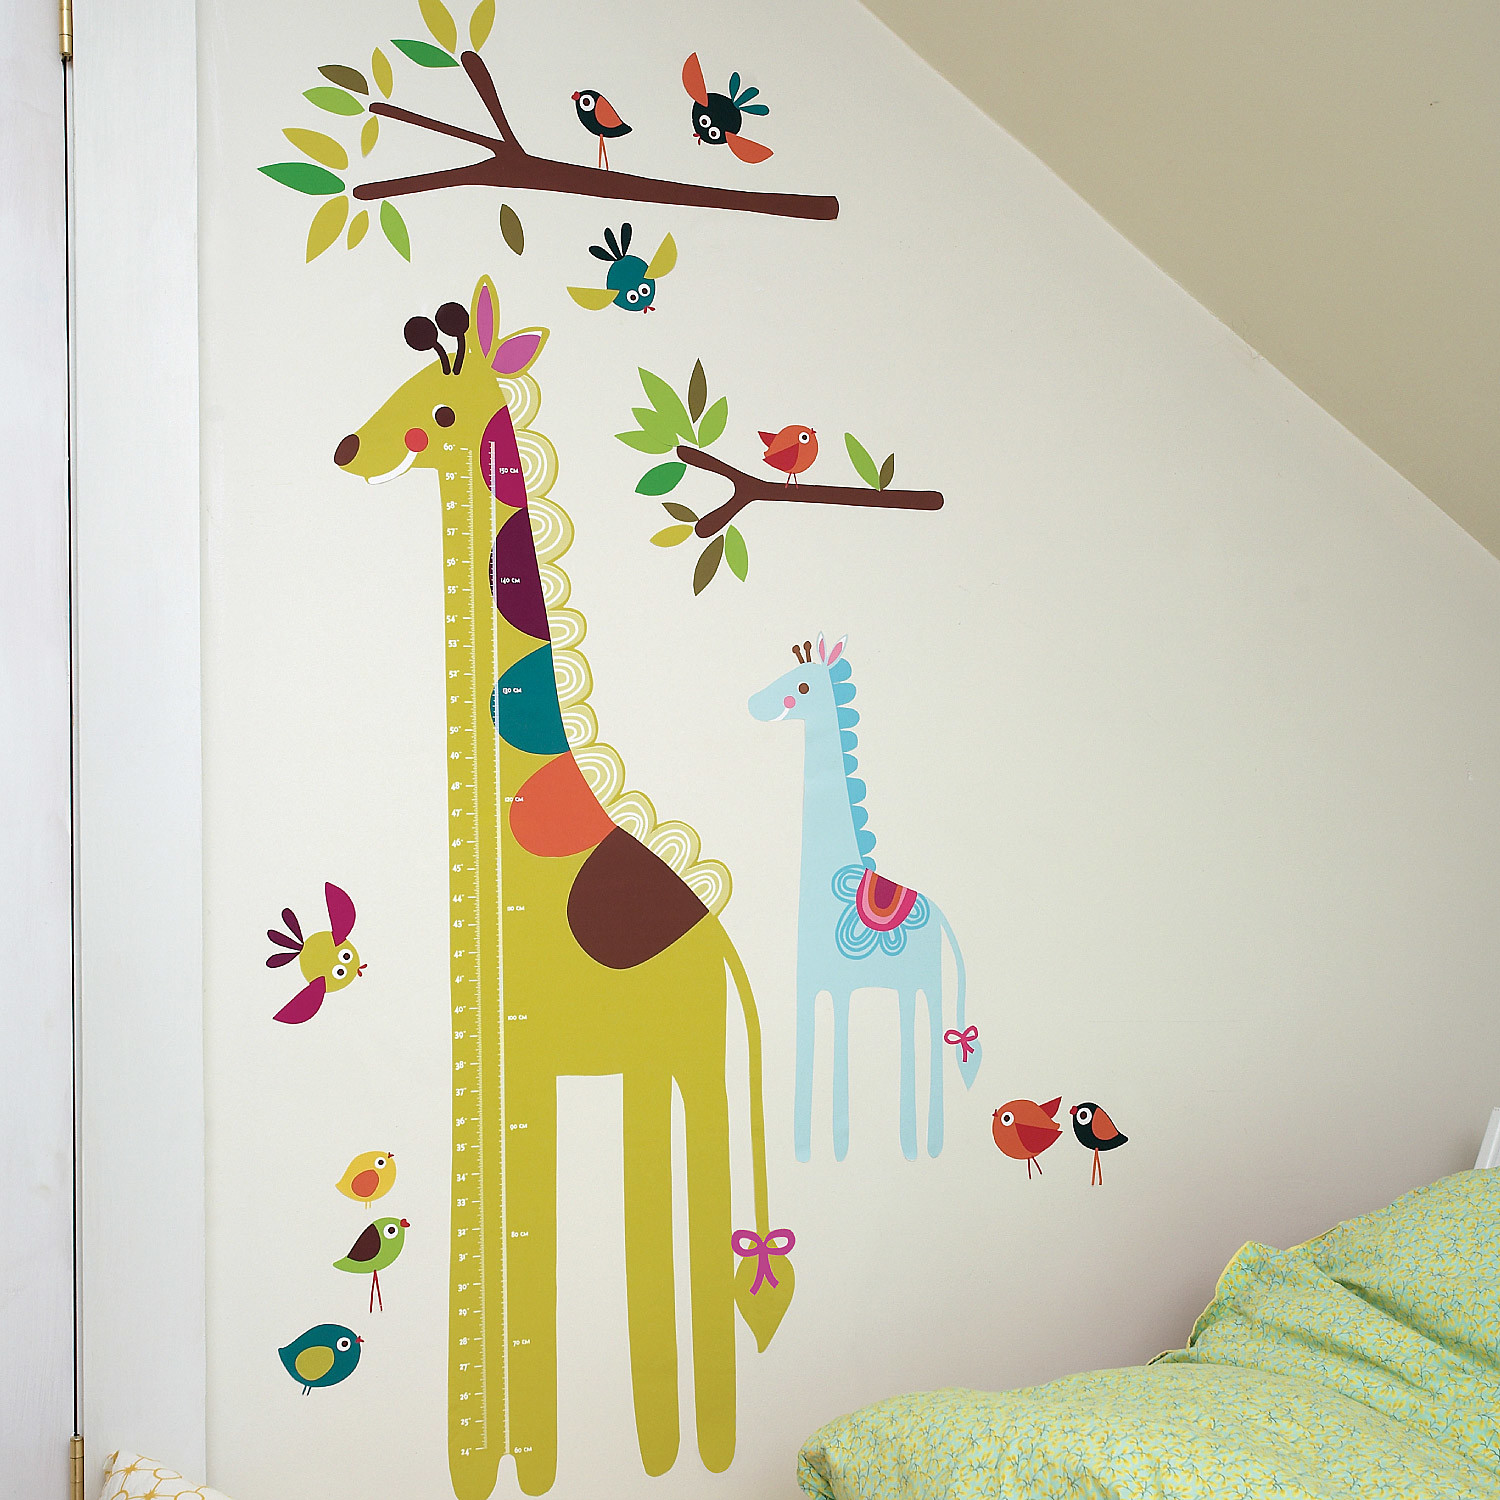 Wallies wall play giraffe growth chart vinyl peel and stick wallies wall play giraffe growth chart vinyl peel and stick decor walmart amipublicfo Choice Image